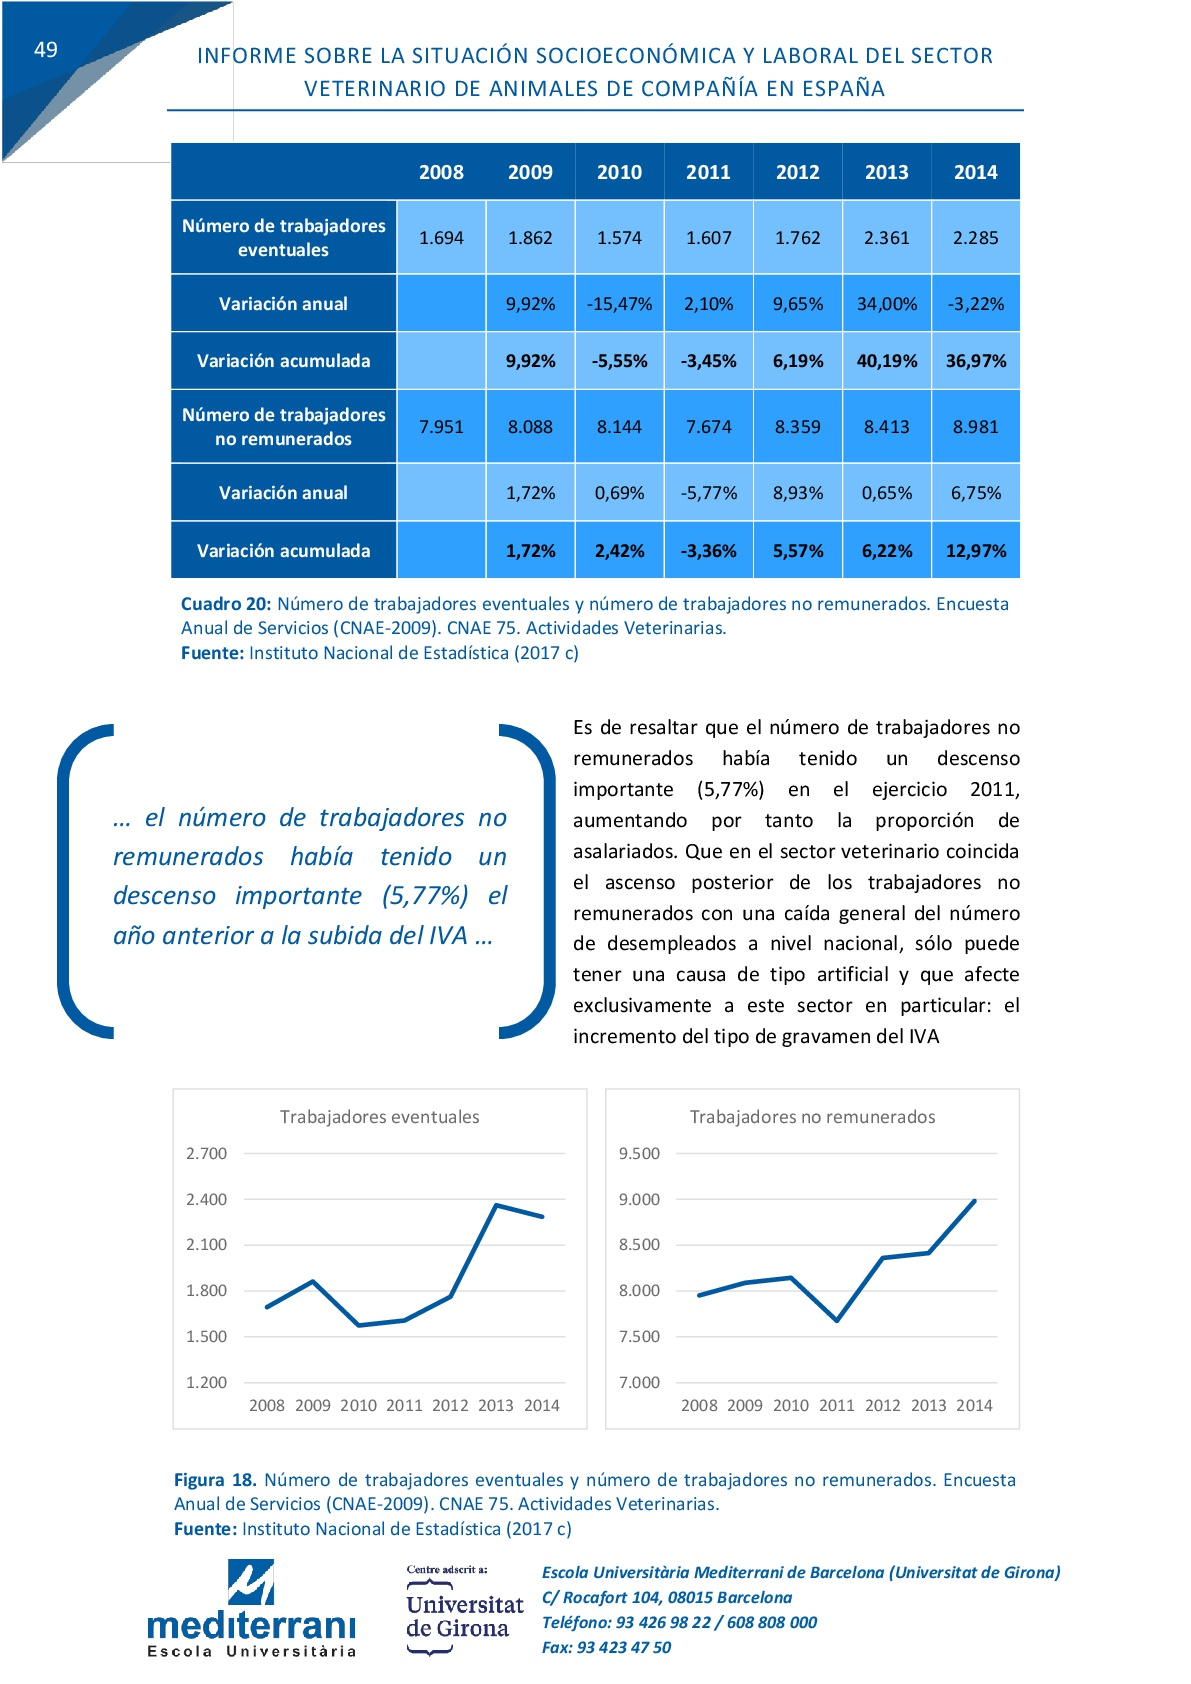 Informe-Veterinario-2017-+-informe-legal-2015-(3)-054